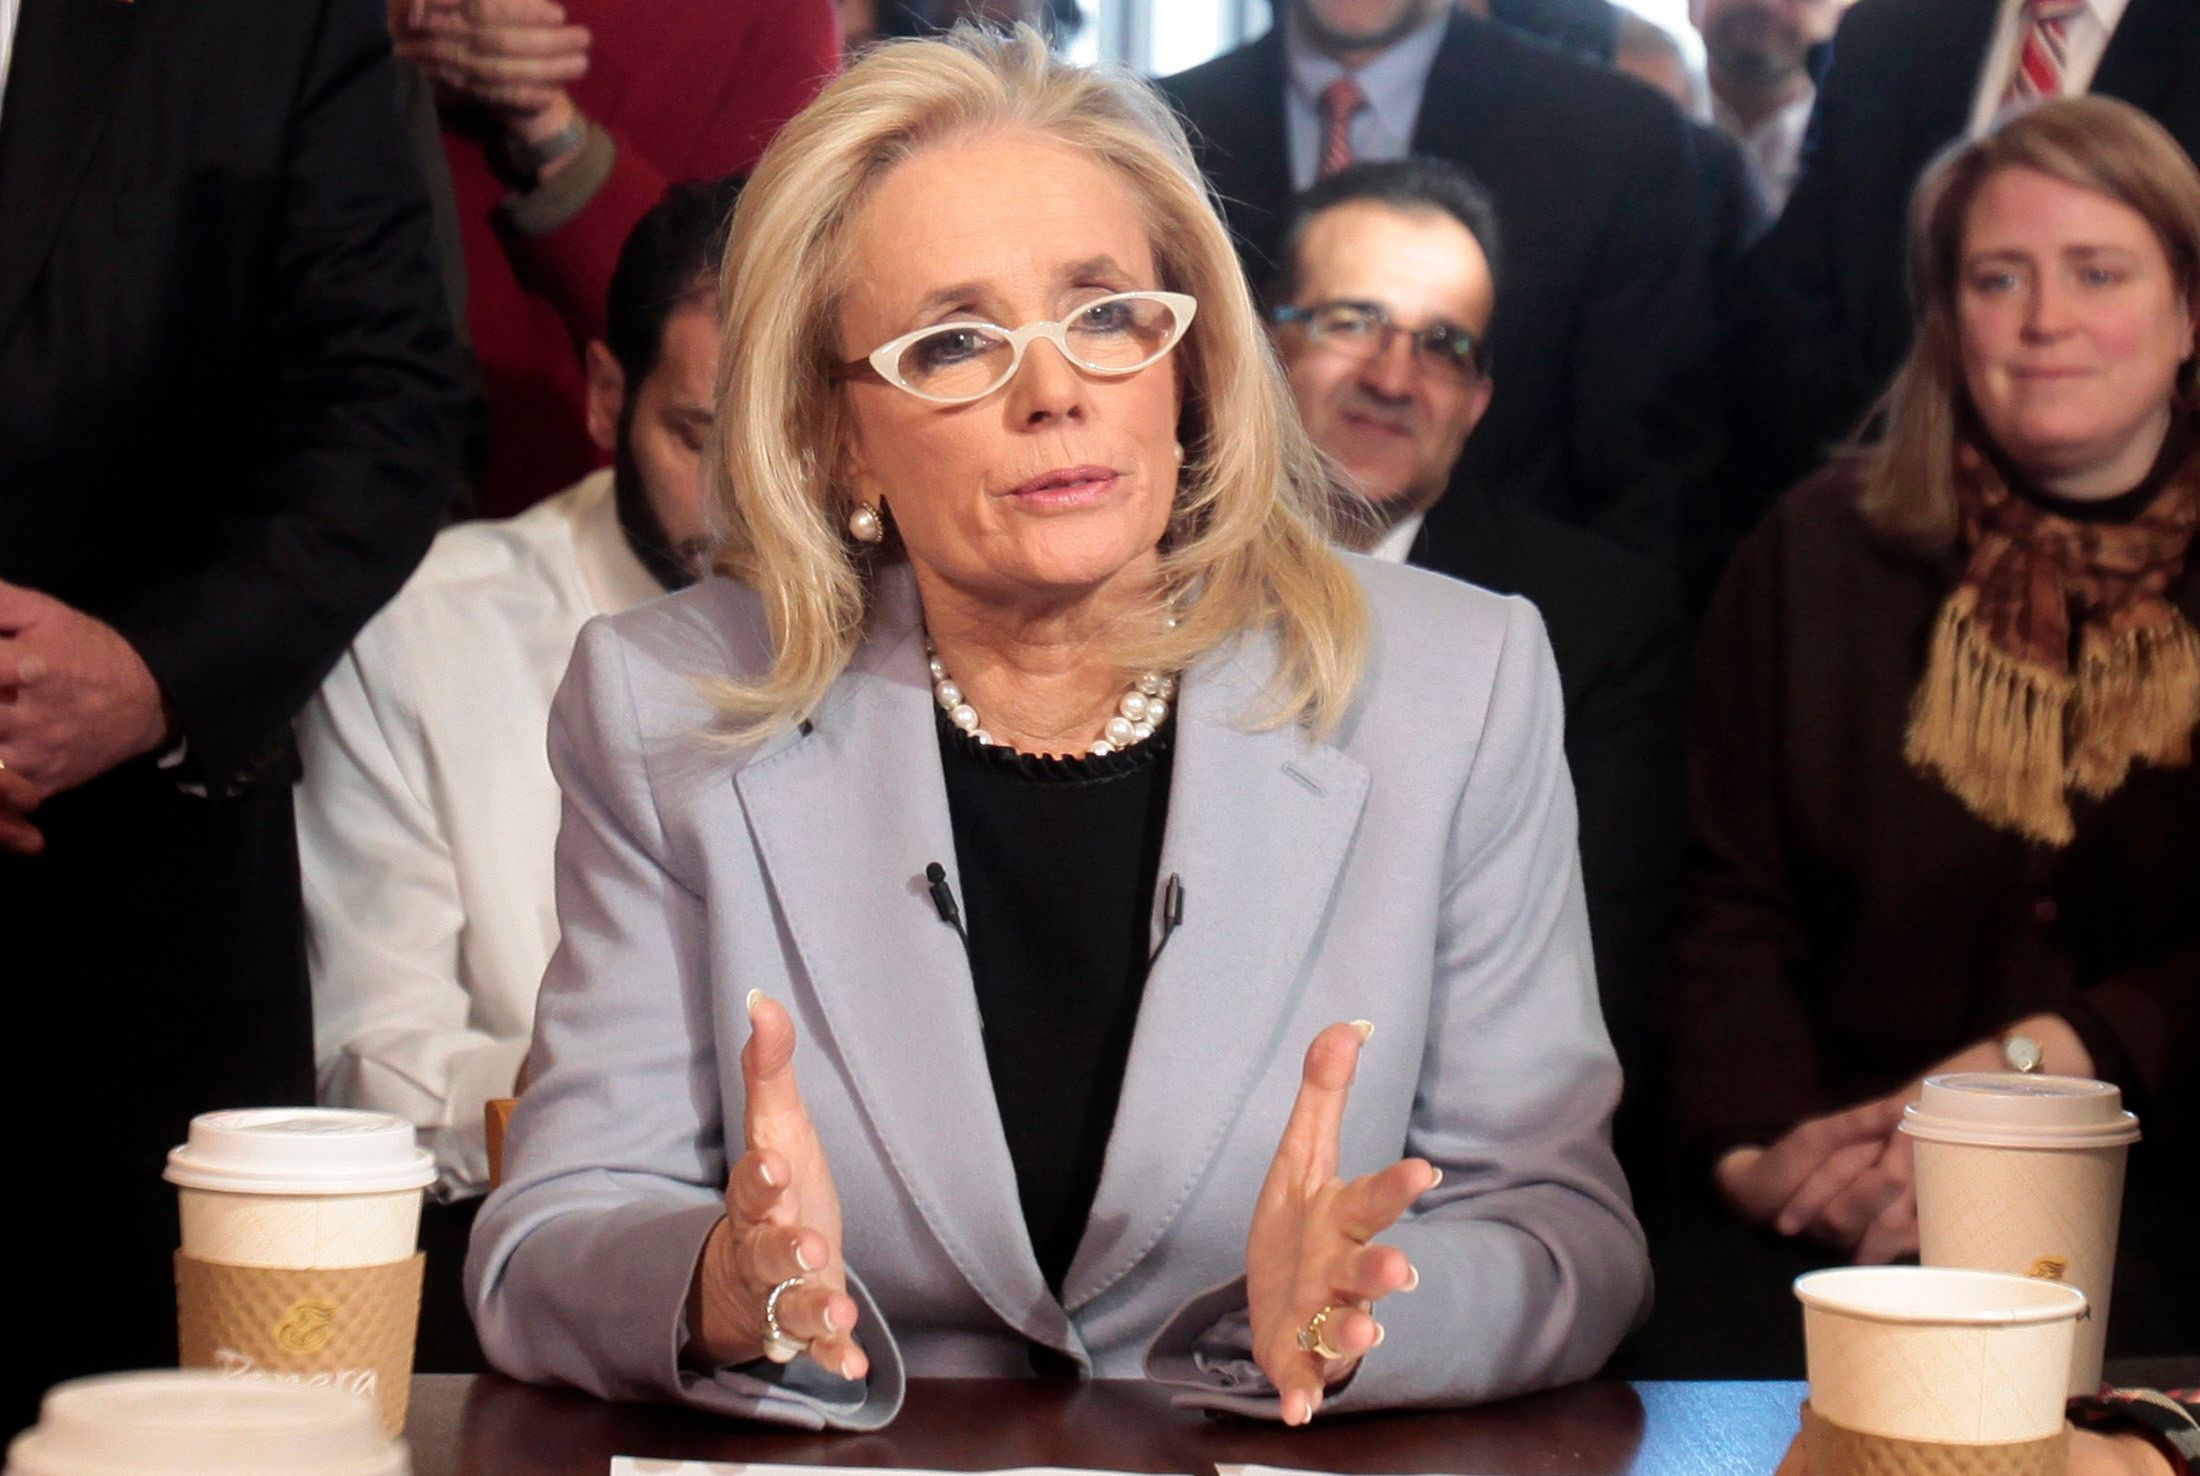 Rep. Debbie Dingell (D-Mich.) said she worries that Abdul El-Sayed's candidacy for the governor's office would be hobbled by